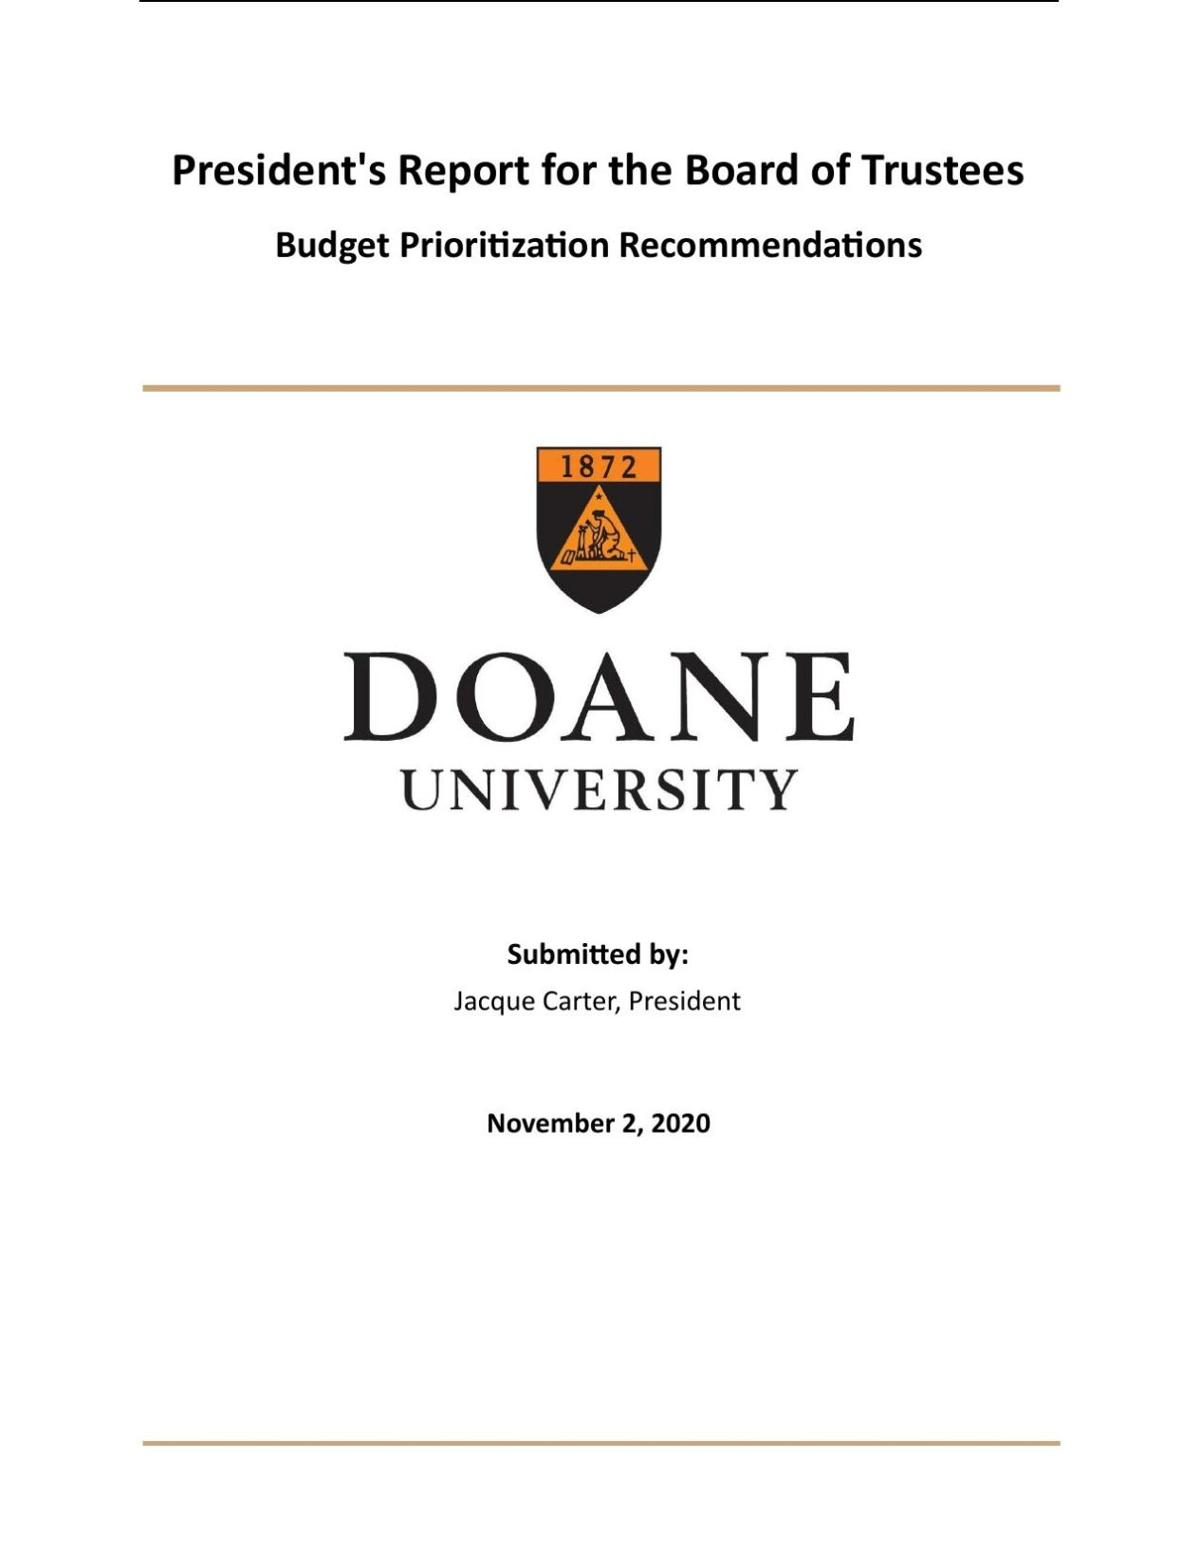 Doane Budget Prioritization Recommendations